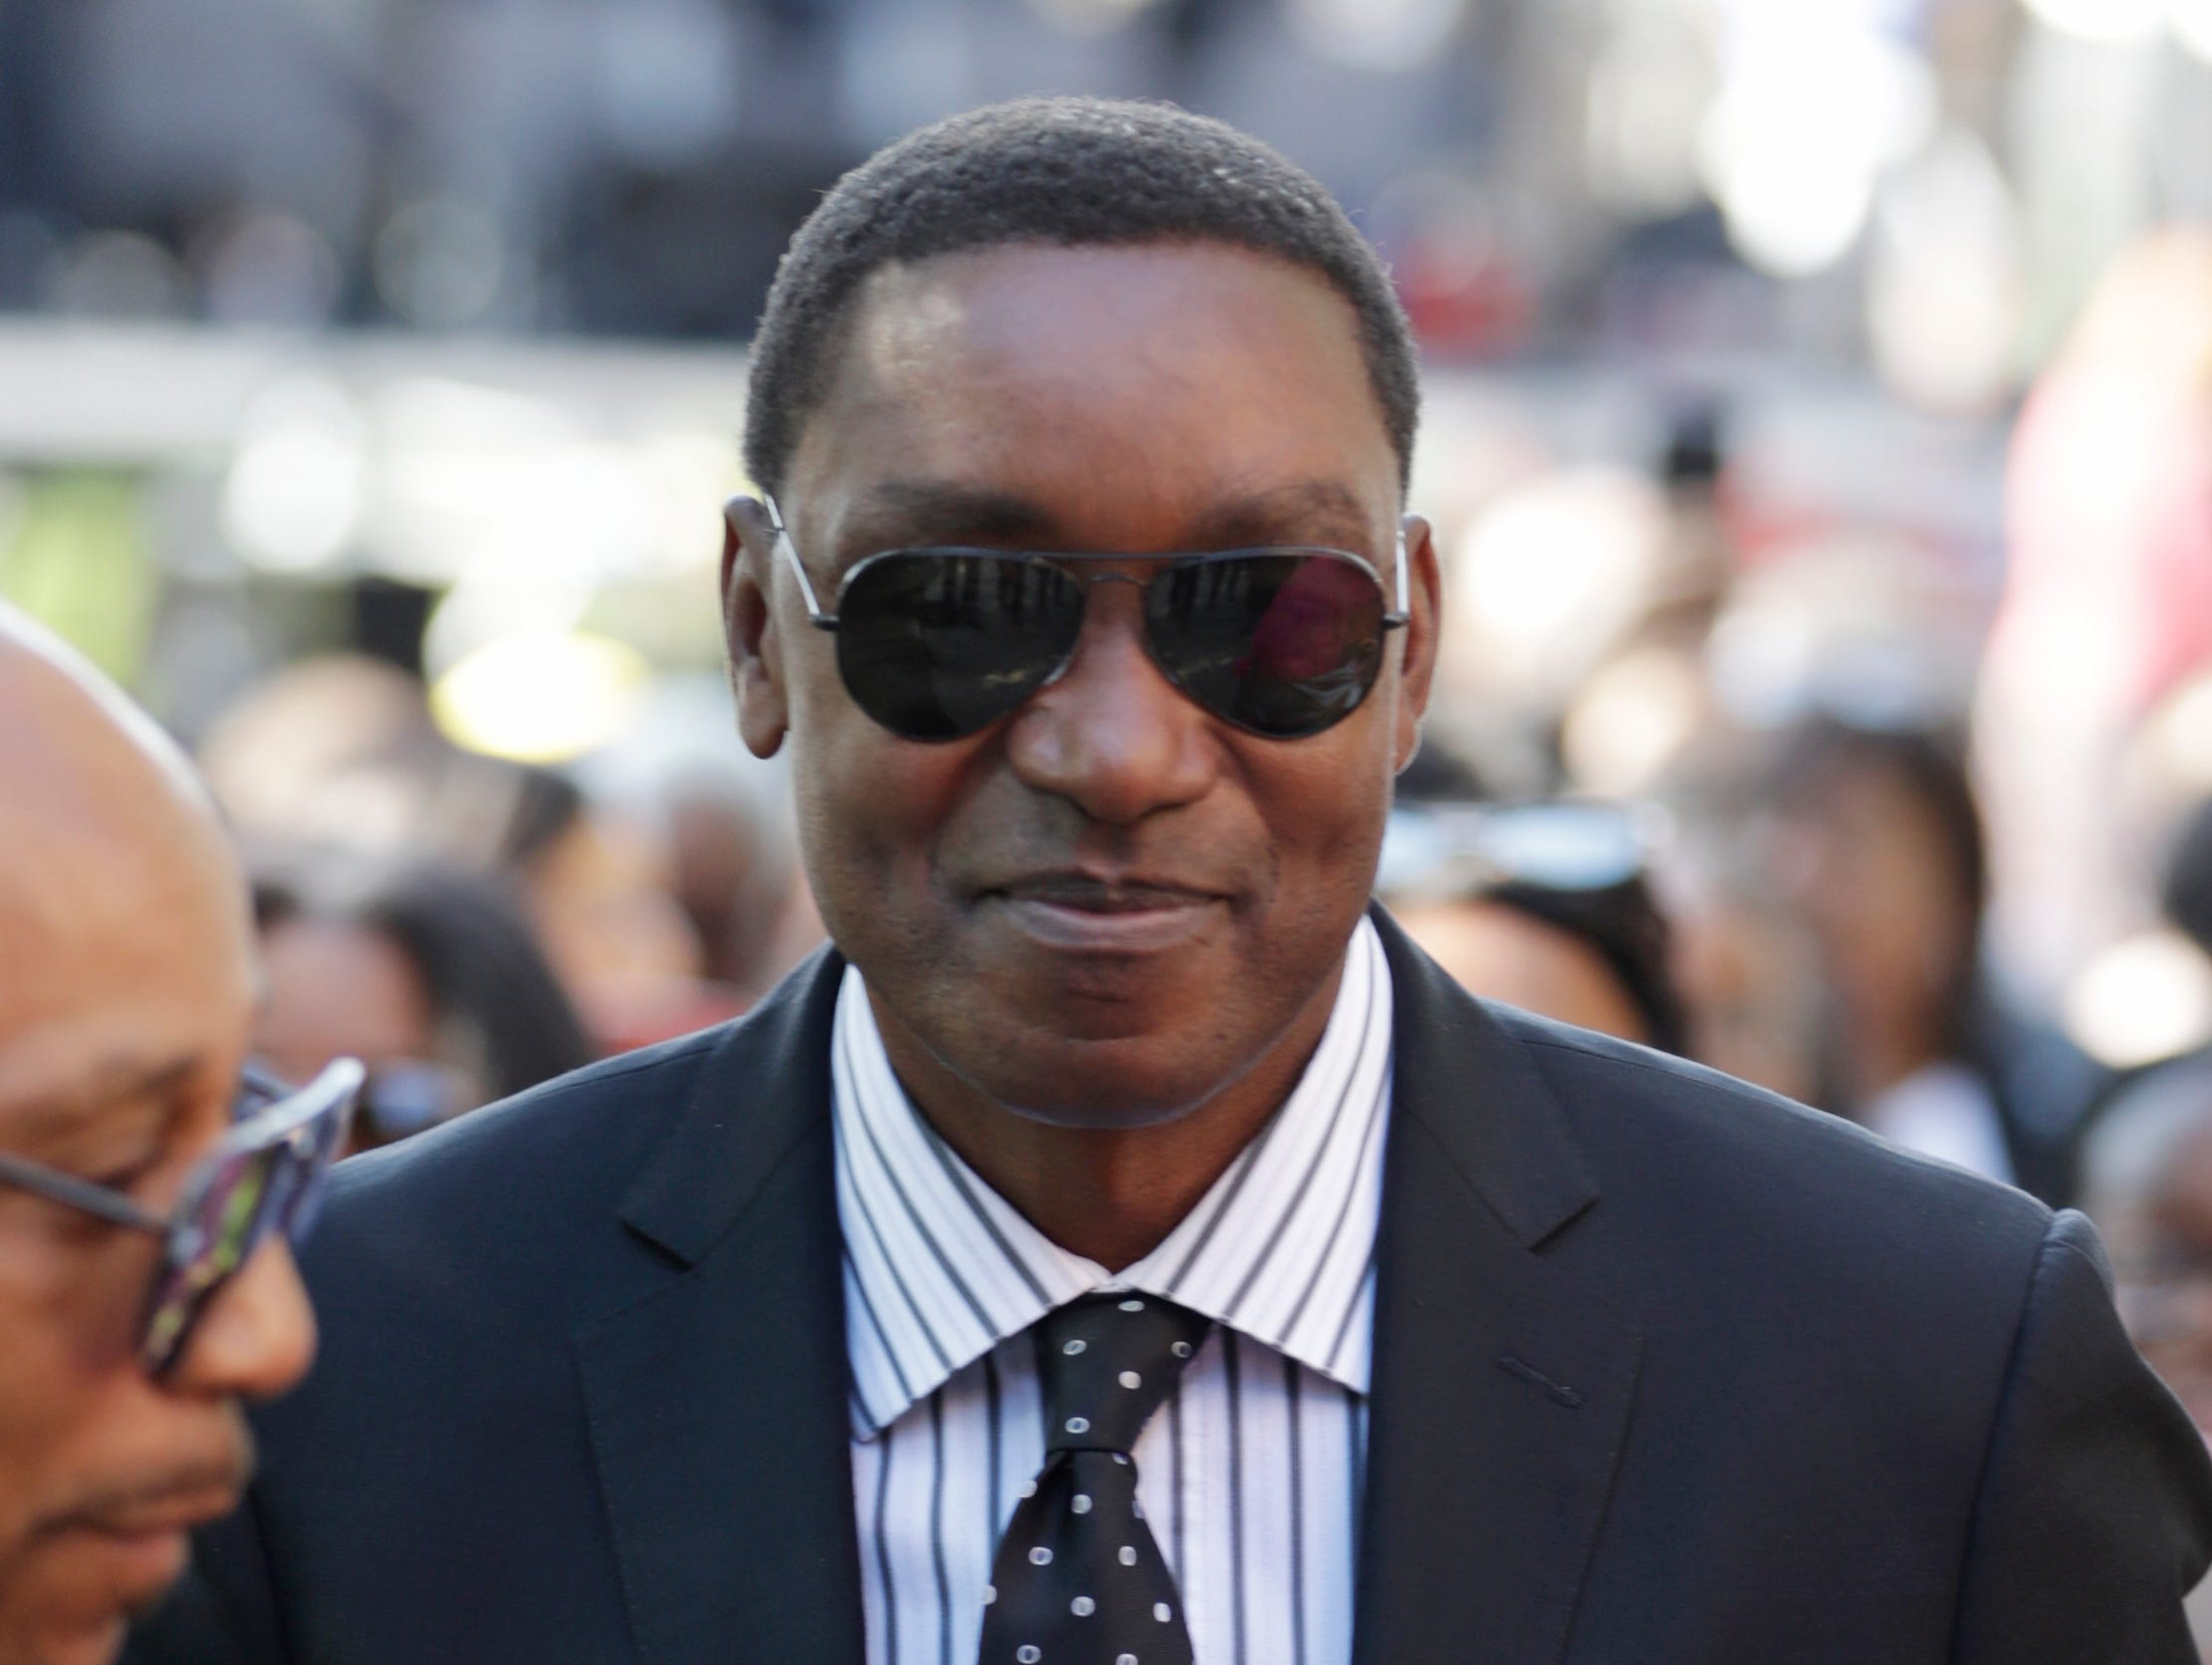 Former basketball player and Detroit Pistons great Isiah Thomas arrives at Greater Grace Temple for Aretha Franklin's funeral.